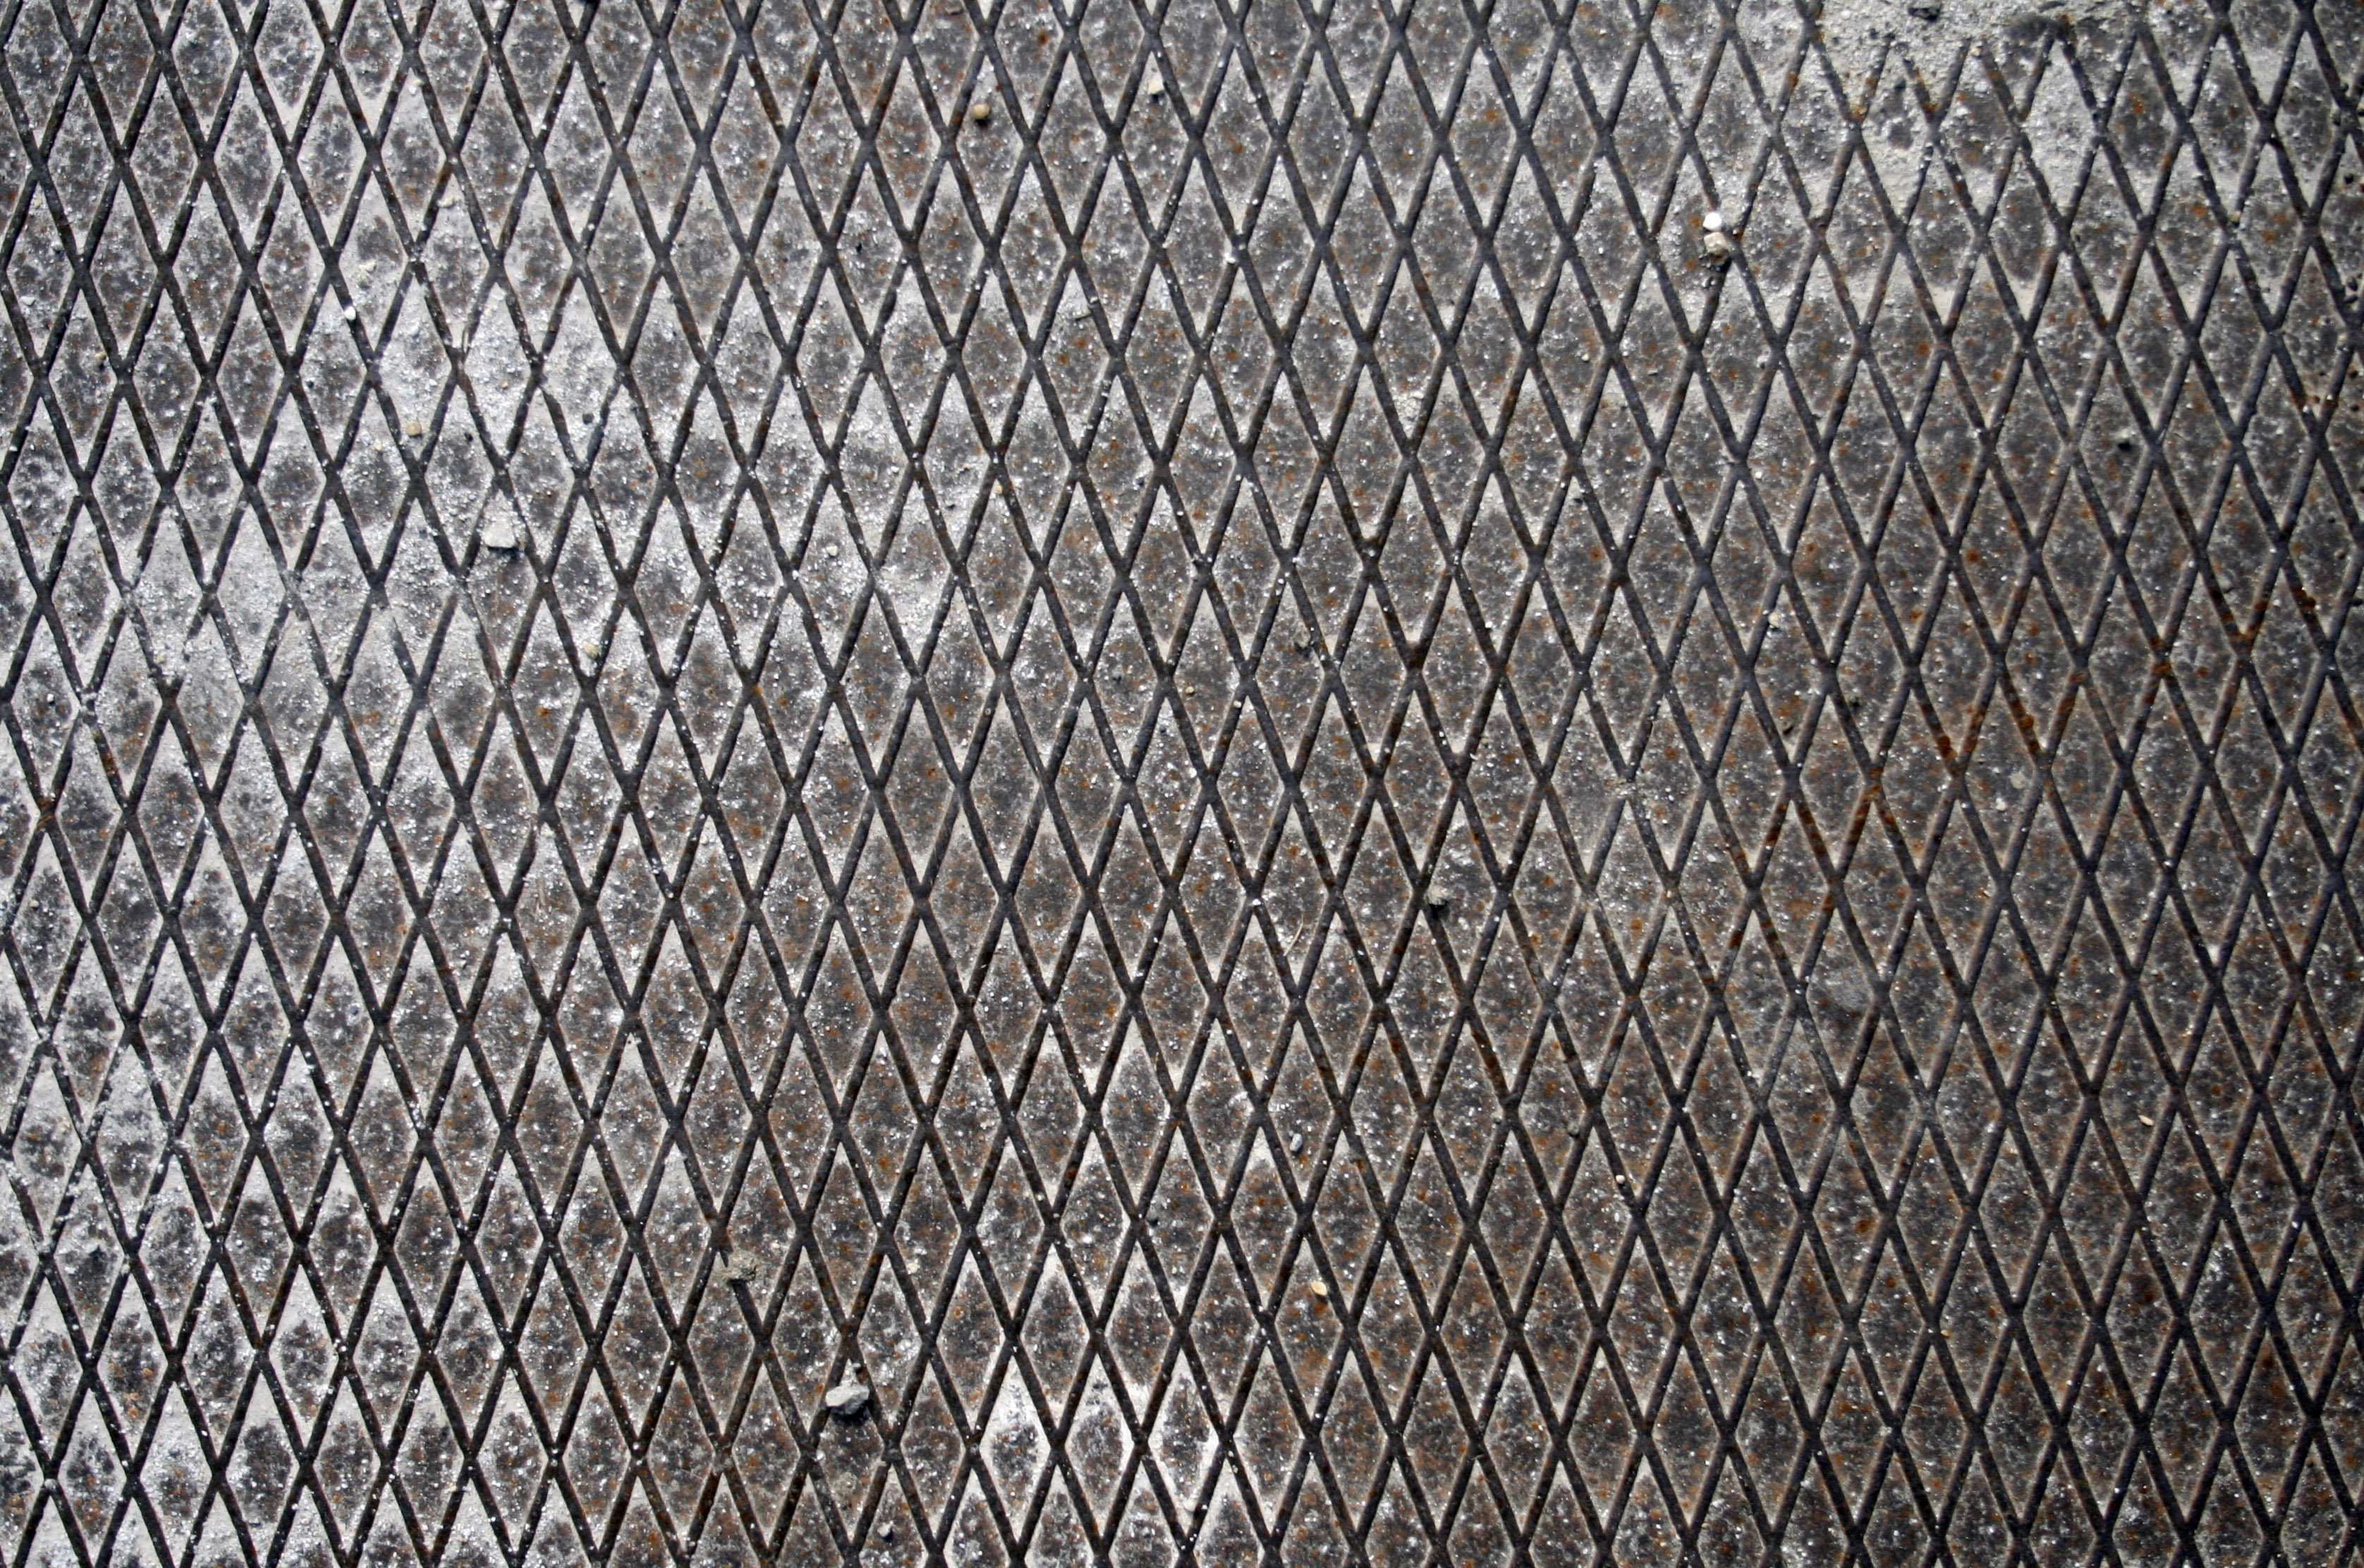 Metal texture with grid | Textures for photoshop free